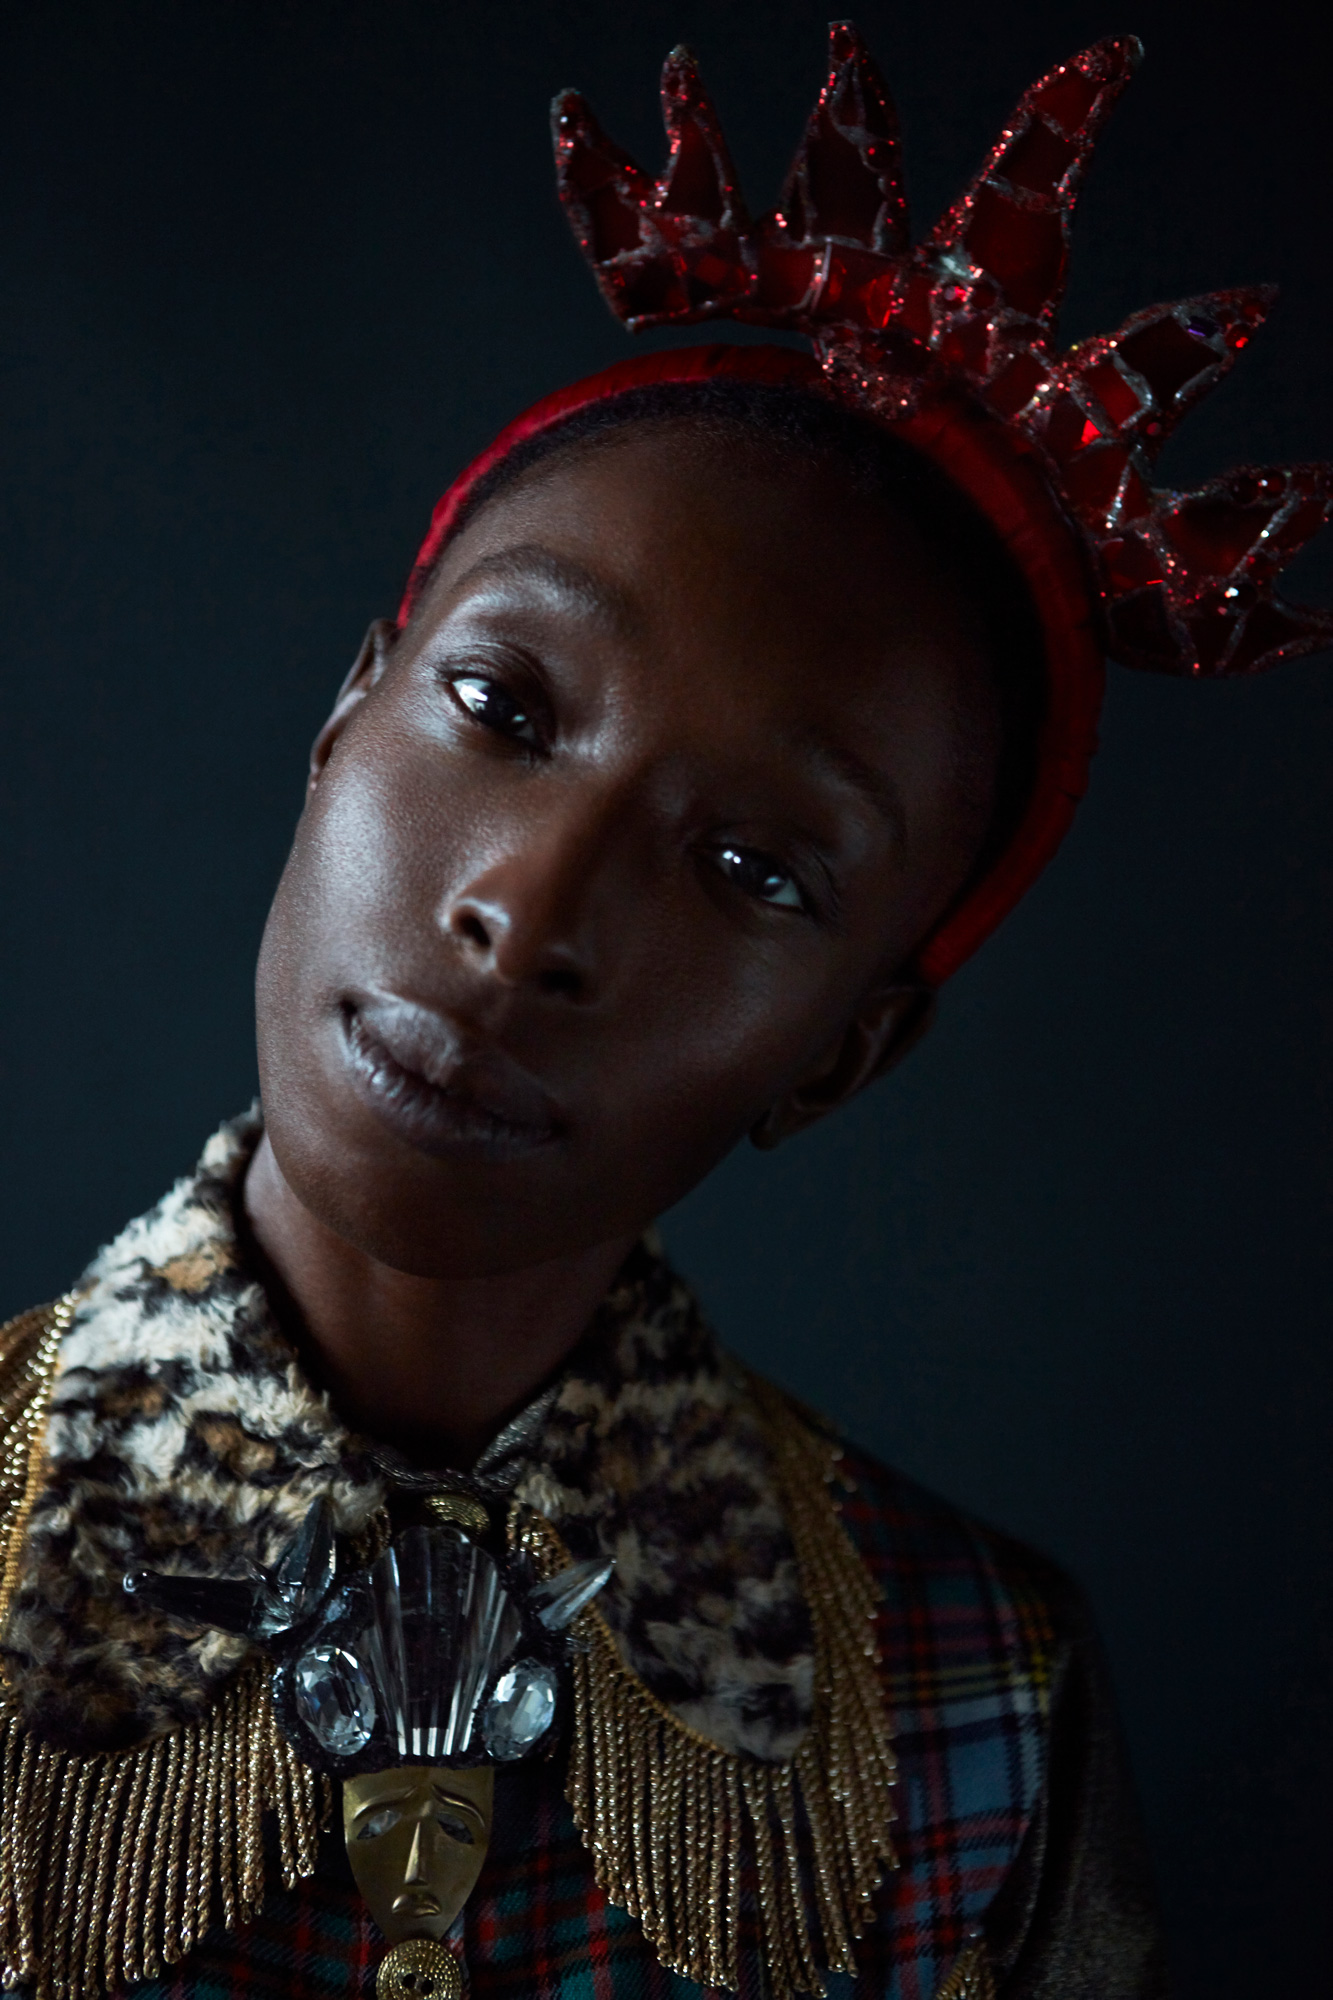 Eunice Olumide, The Scottish model turned curator supporting emerging artists, fashion story for Hunger Magazine, Photography by Ioannis Koussertari